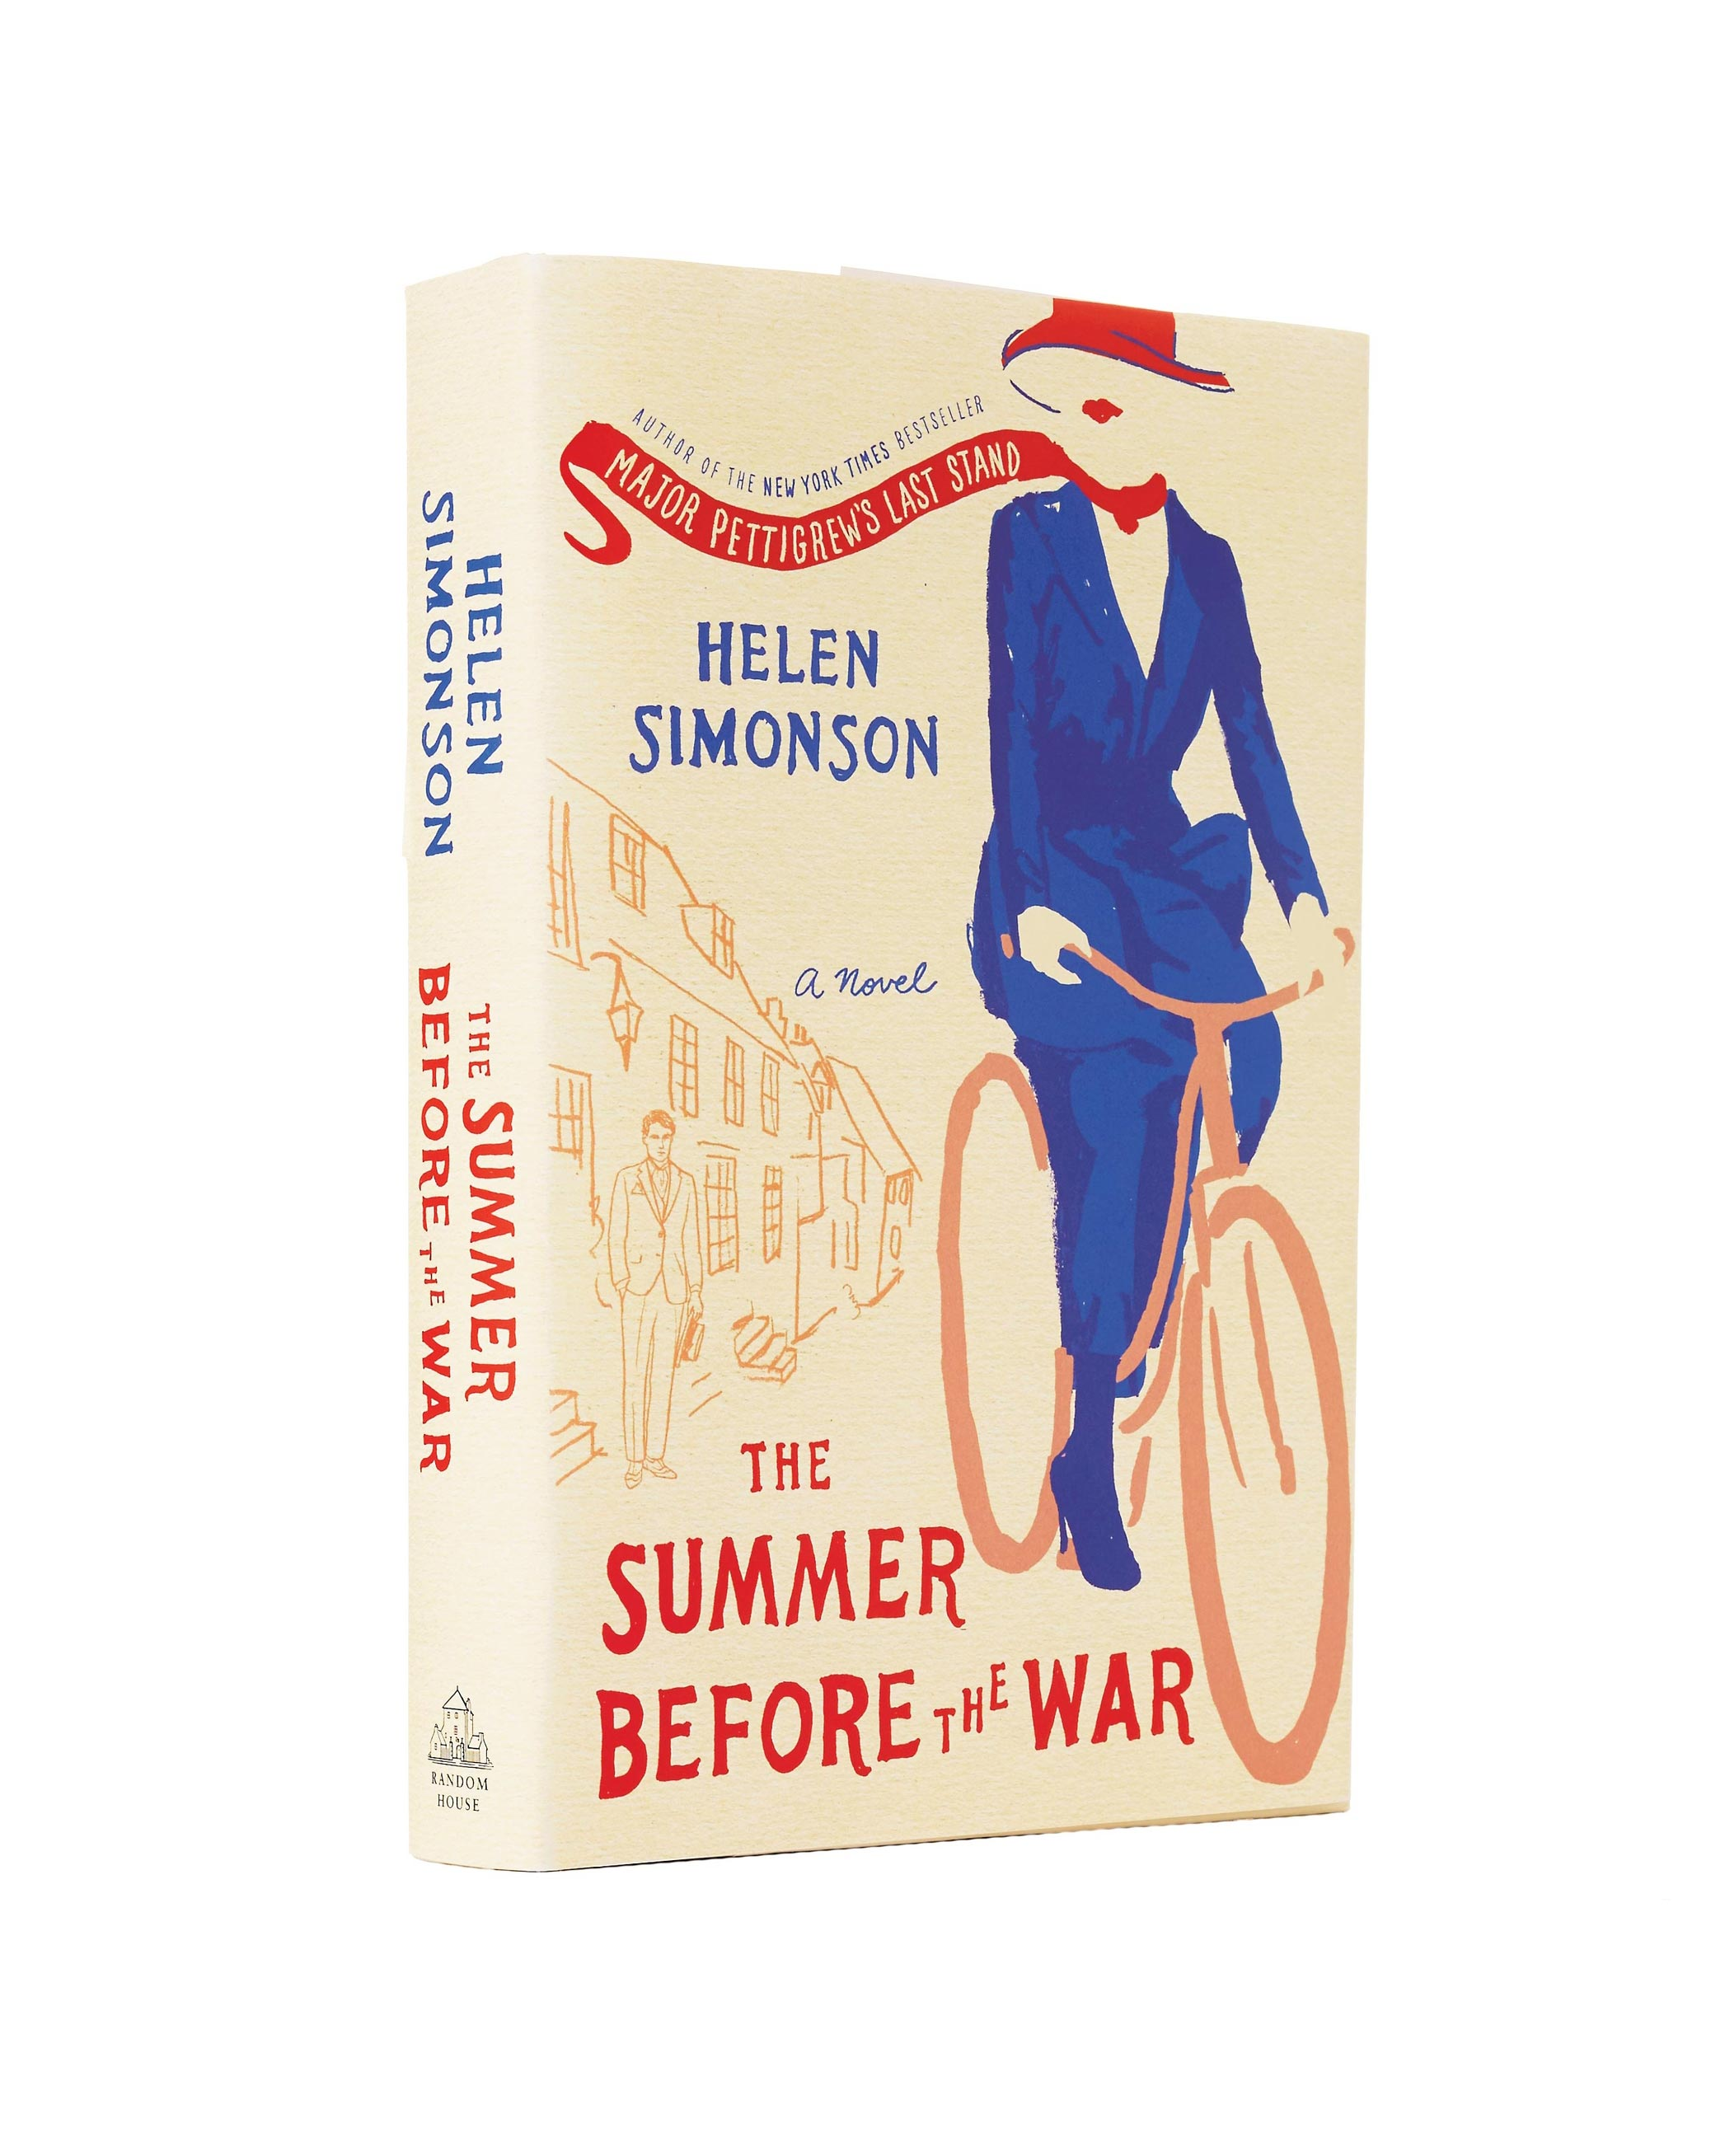 book-the-summer-before-the-war-029-d112770-0216.jpg